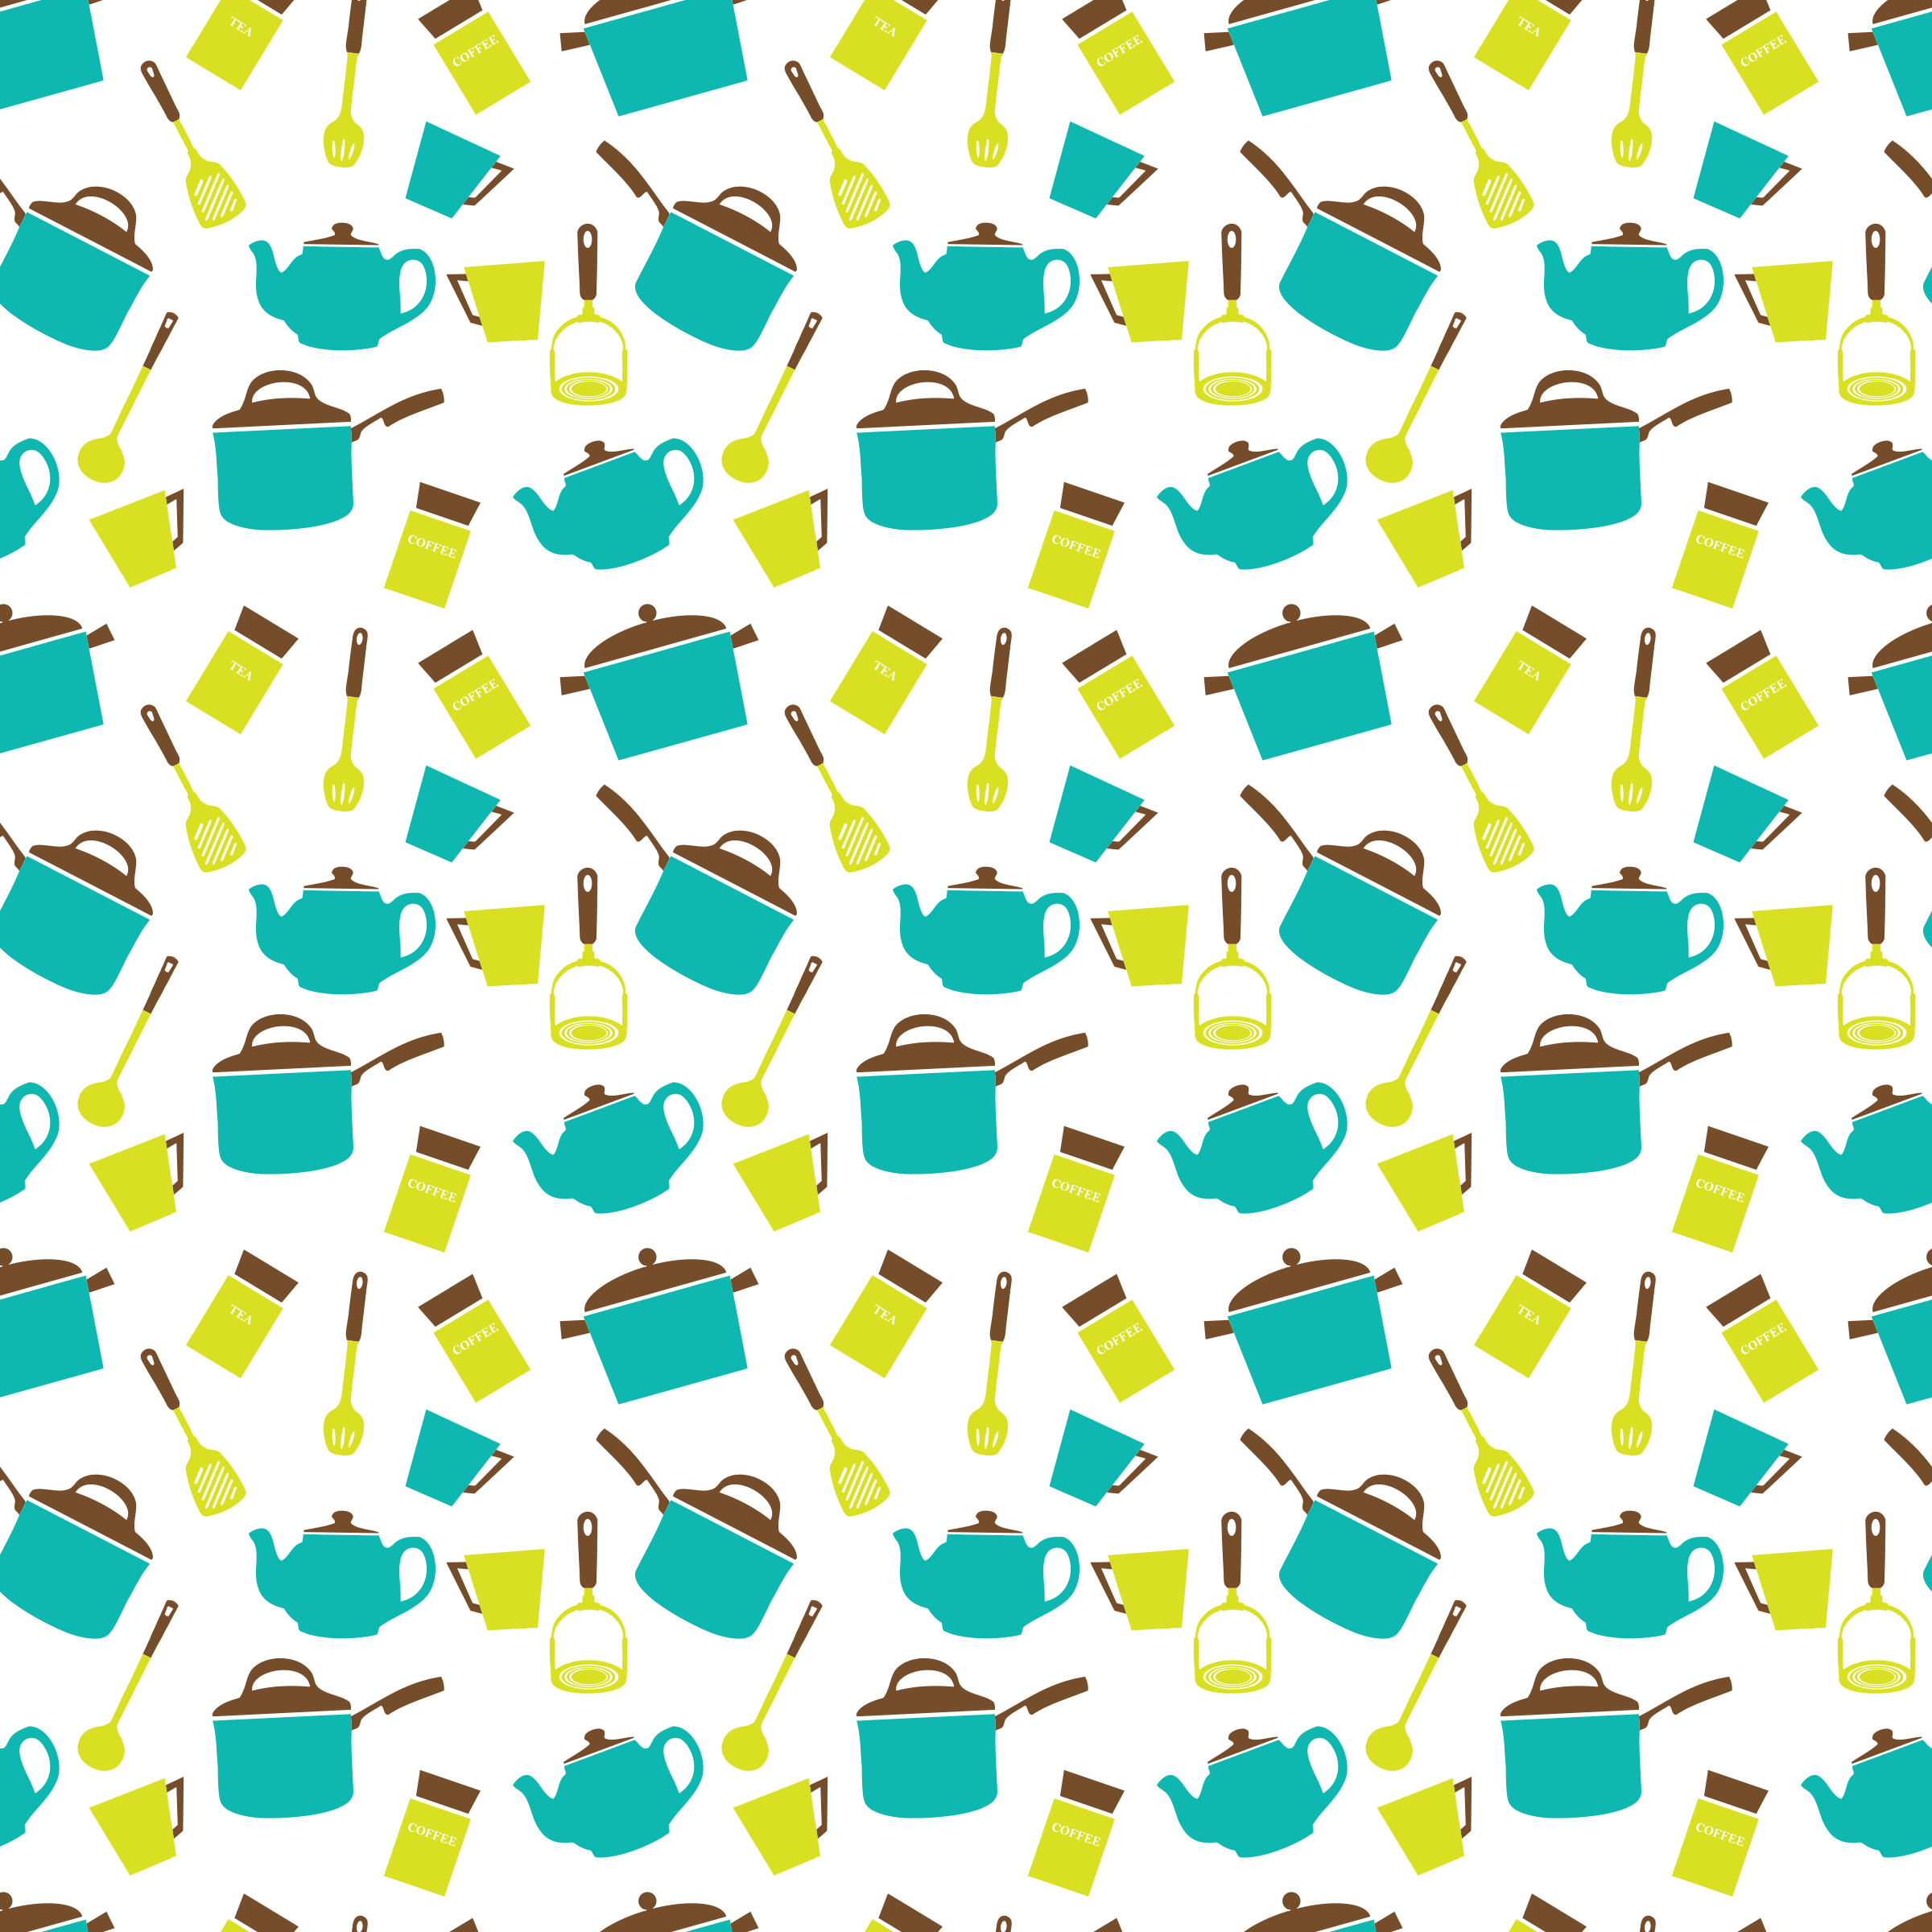 kitchenutensilscrockeryseamlesspattern kitchen wallpaper designs Kitchen Utensils Crockery seamless pattern